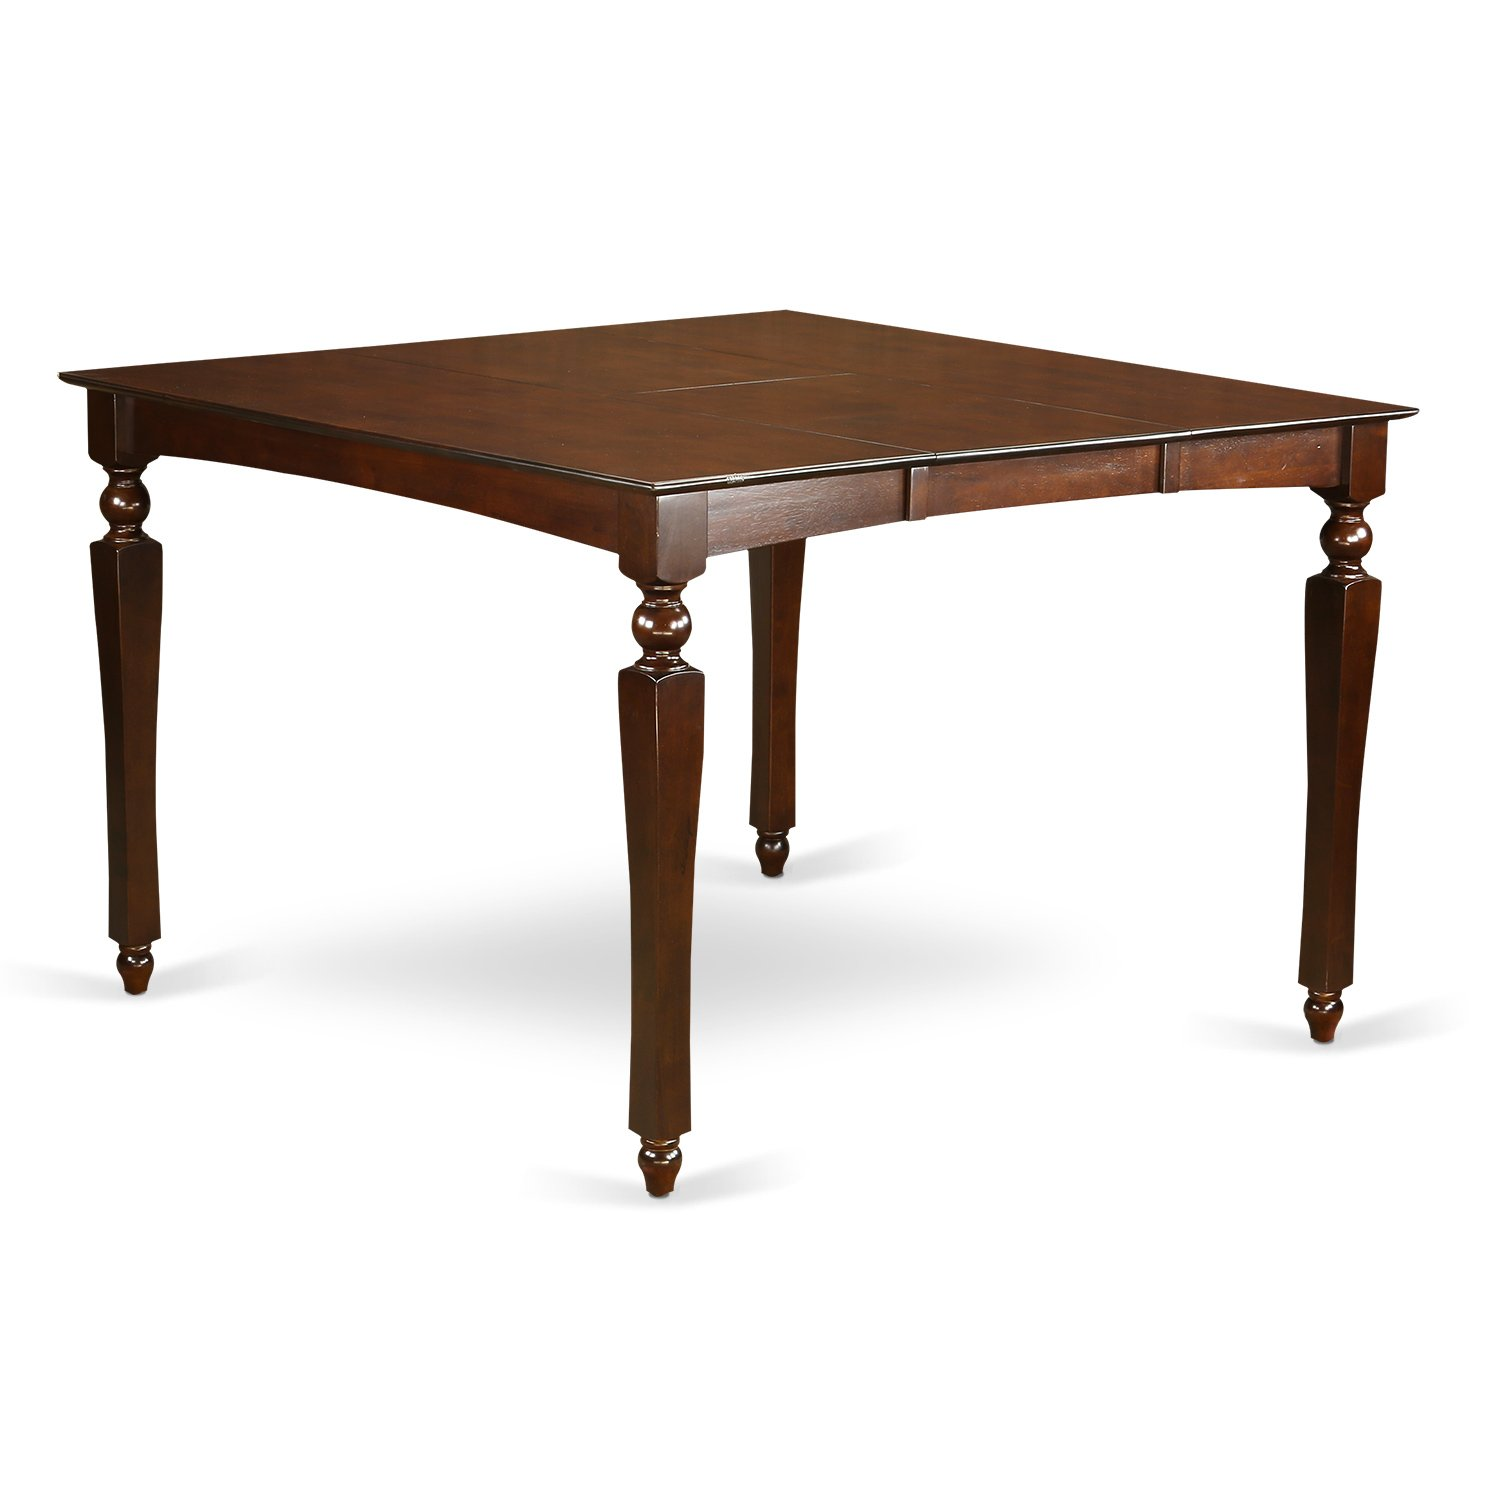 Chelsea Gathering 54 square counter height dining table with 18 butterfly leaf